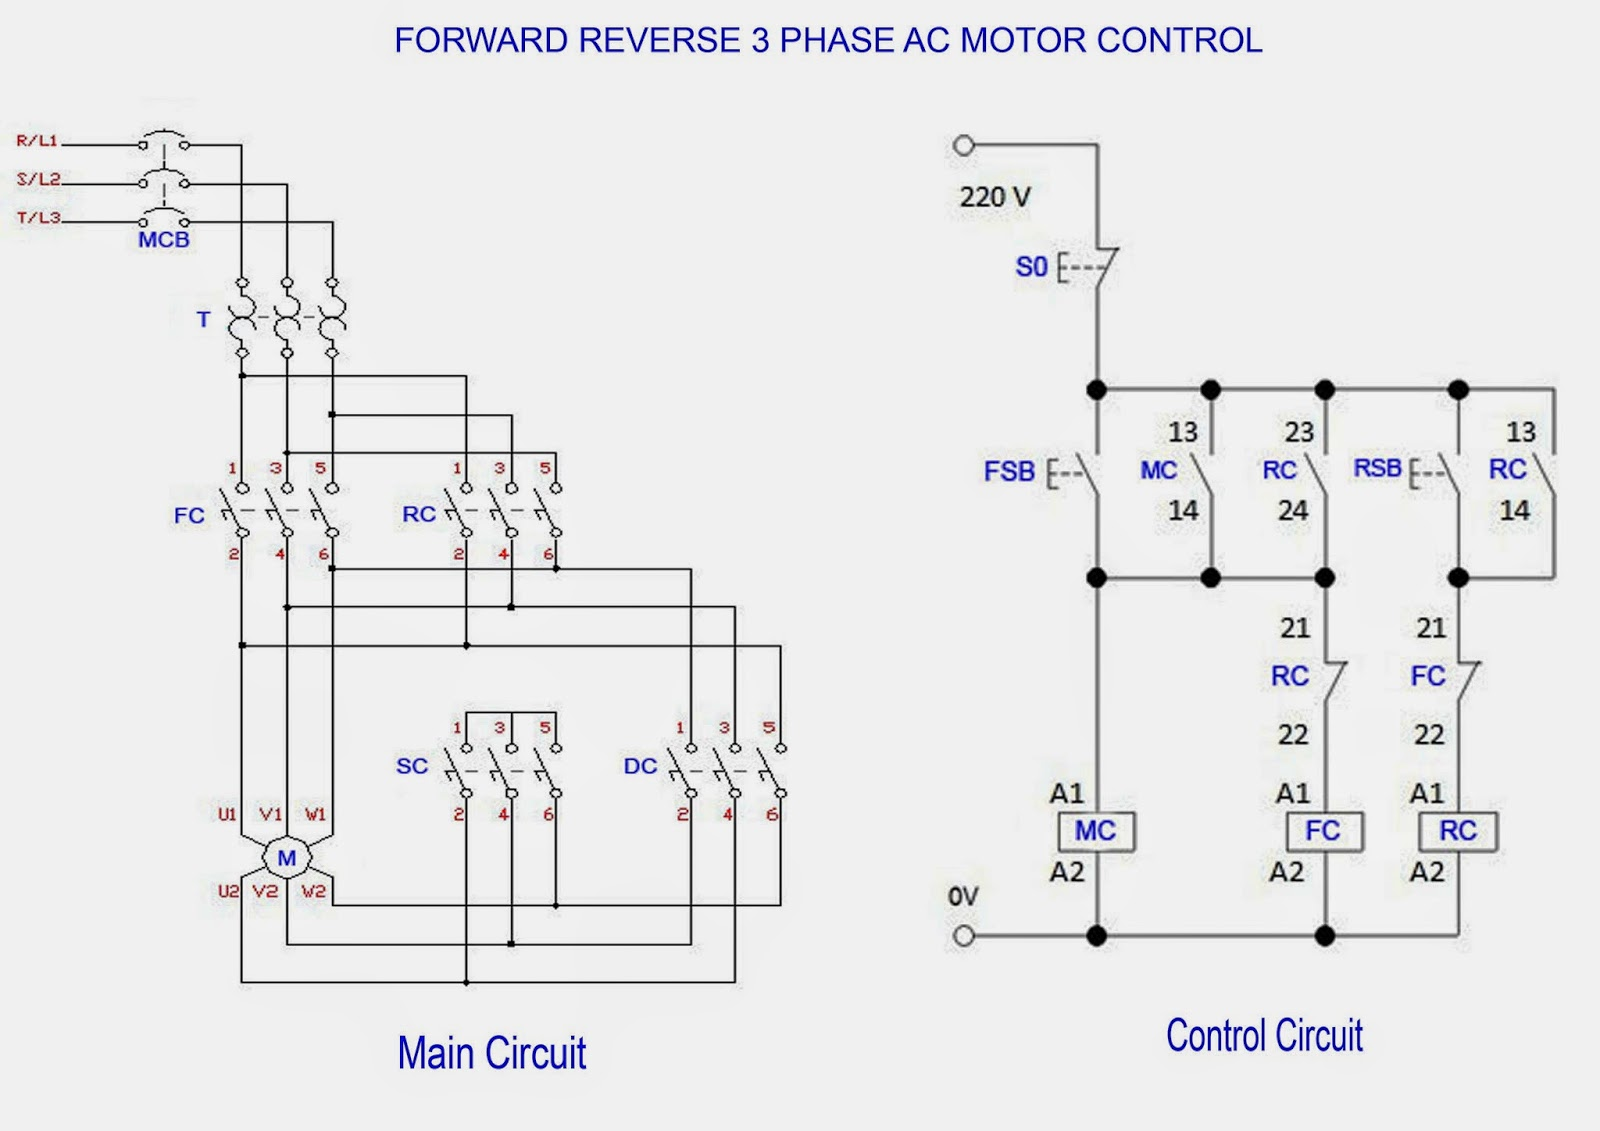 hight resolution of forward reverse 3 phase ac motor control star delta wiring forward reverse motor control circuit diagram pdf forward reverse motor control wiring